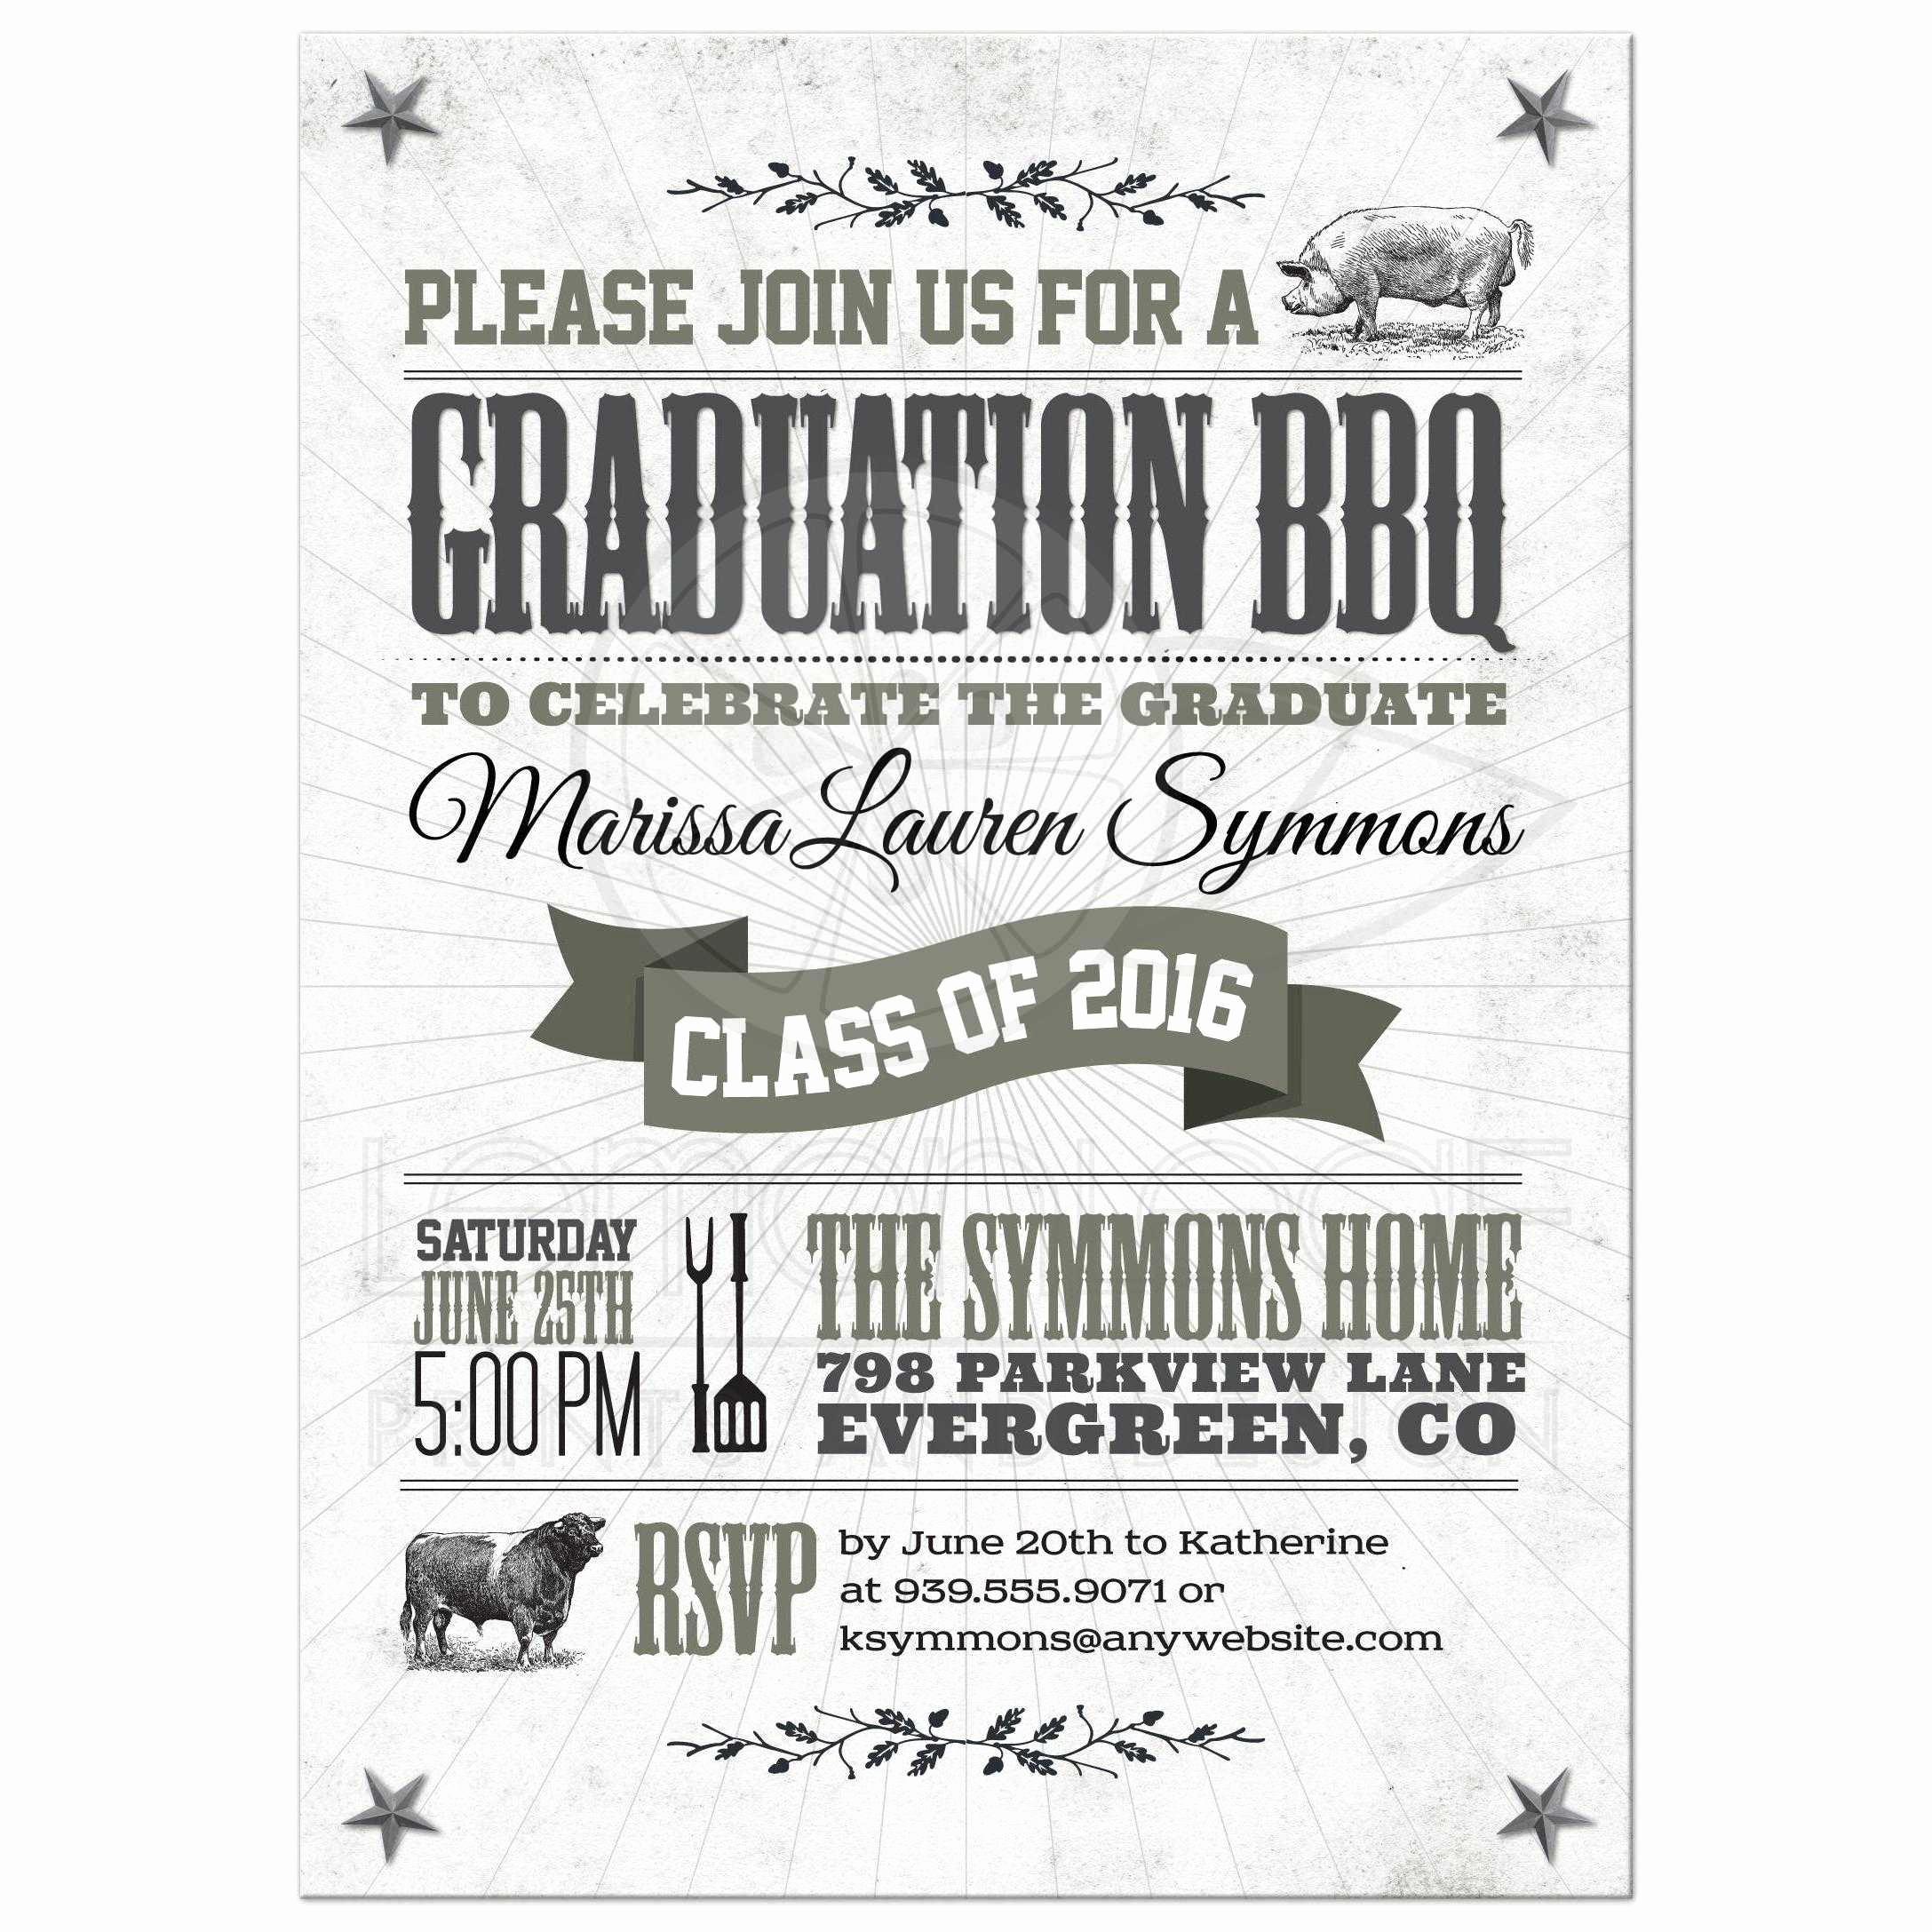 Invitation Inserts for Graduation Party New Graduation Party Invitation Rustic Bbq Pig and Cow Gray